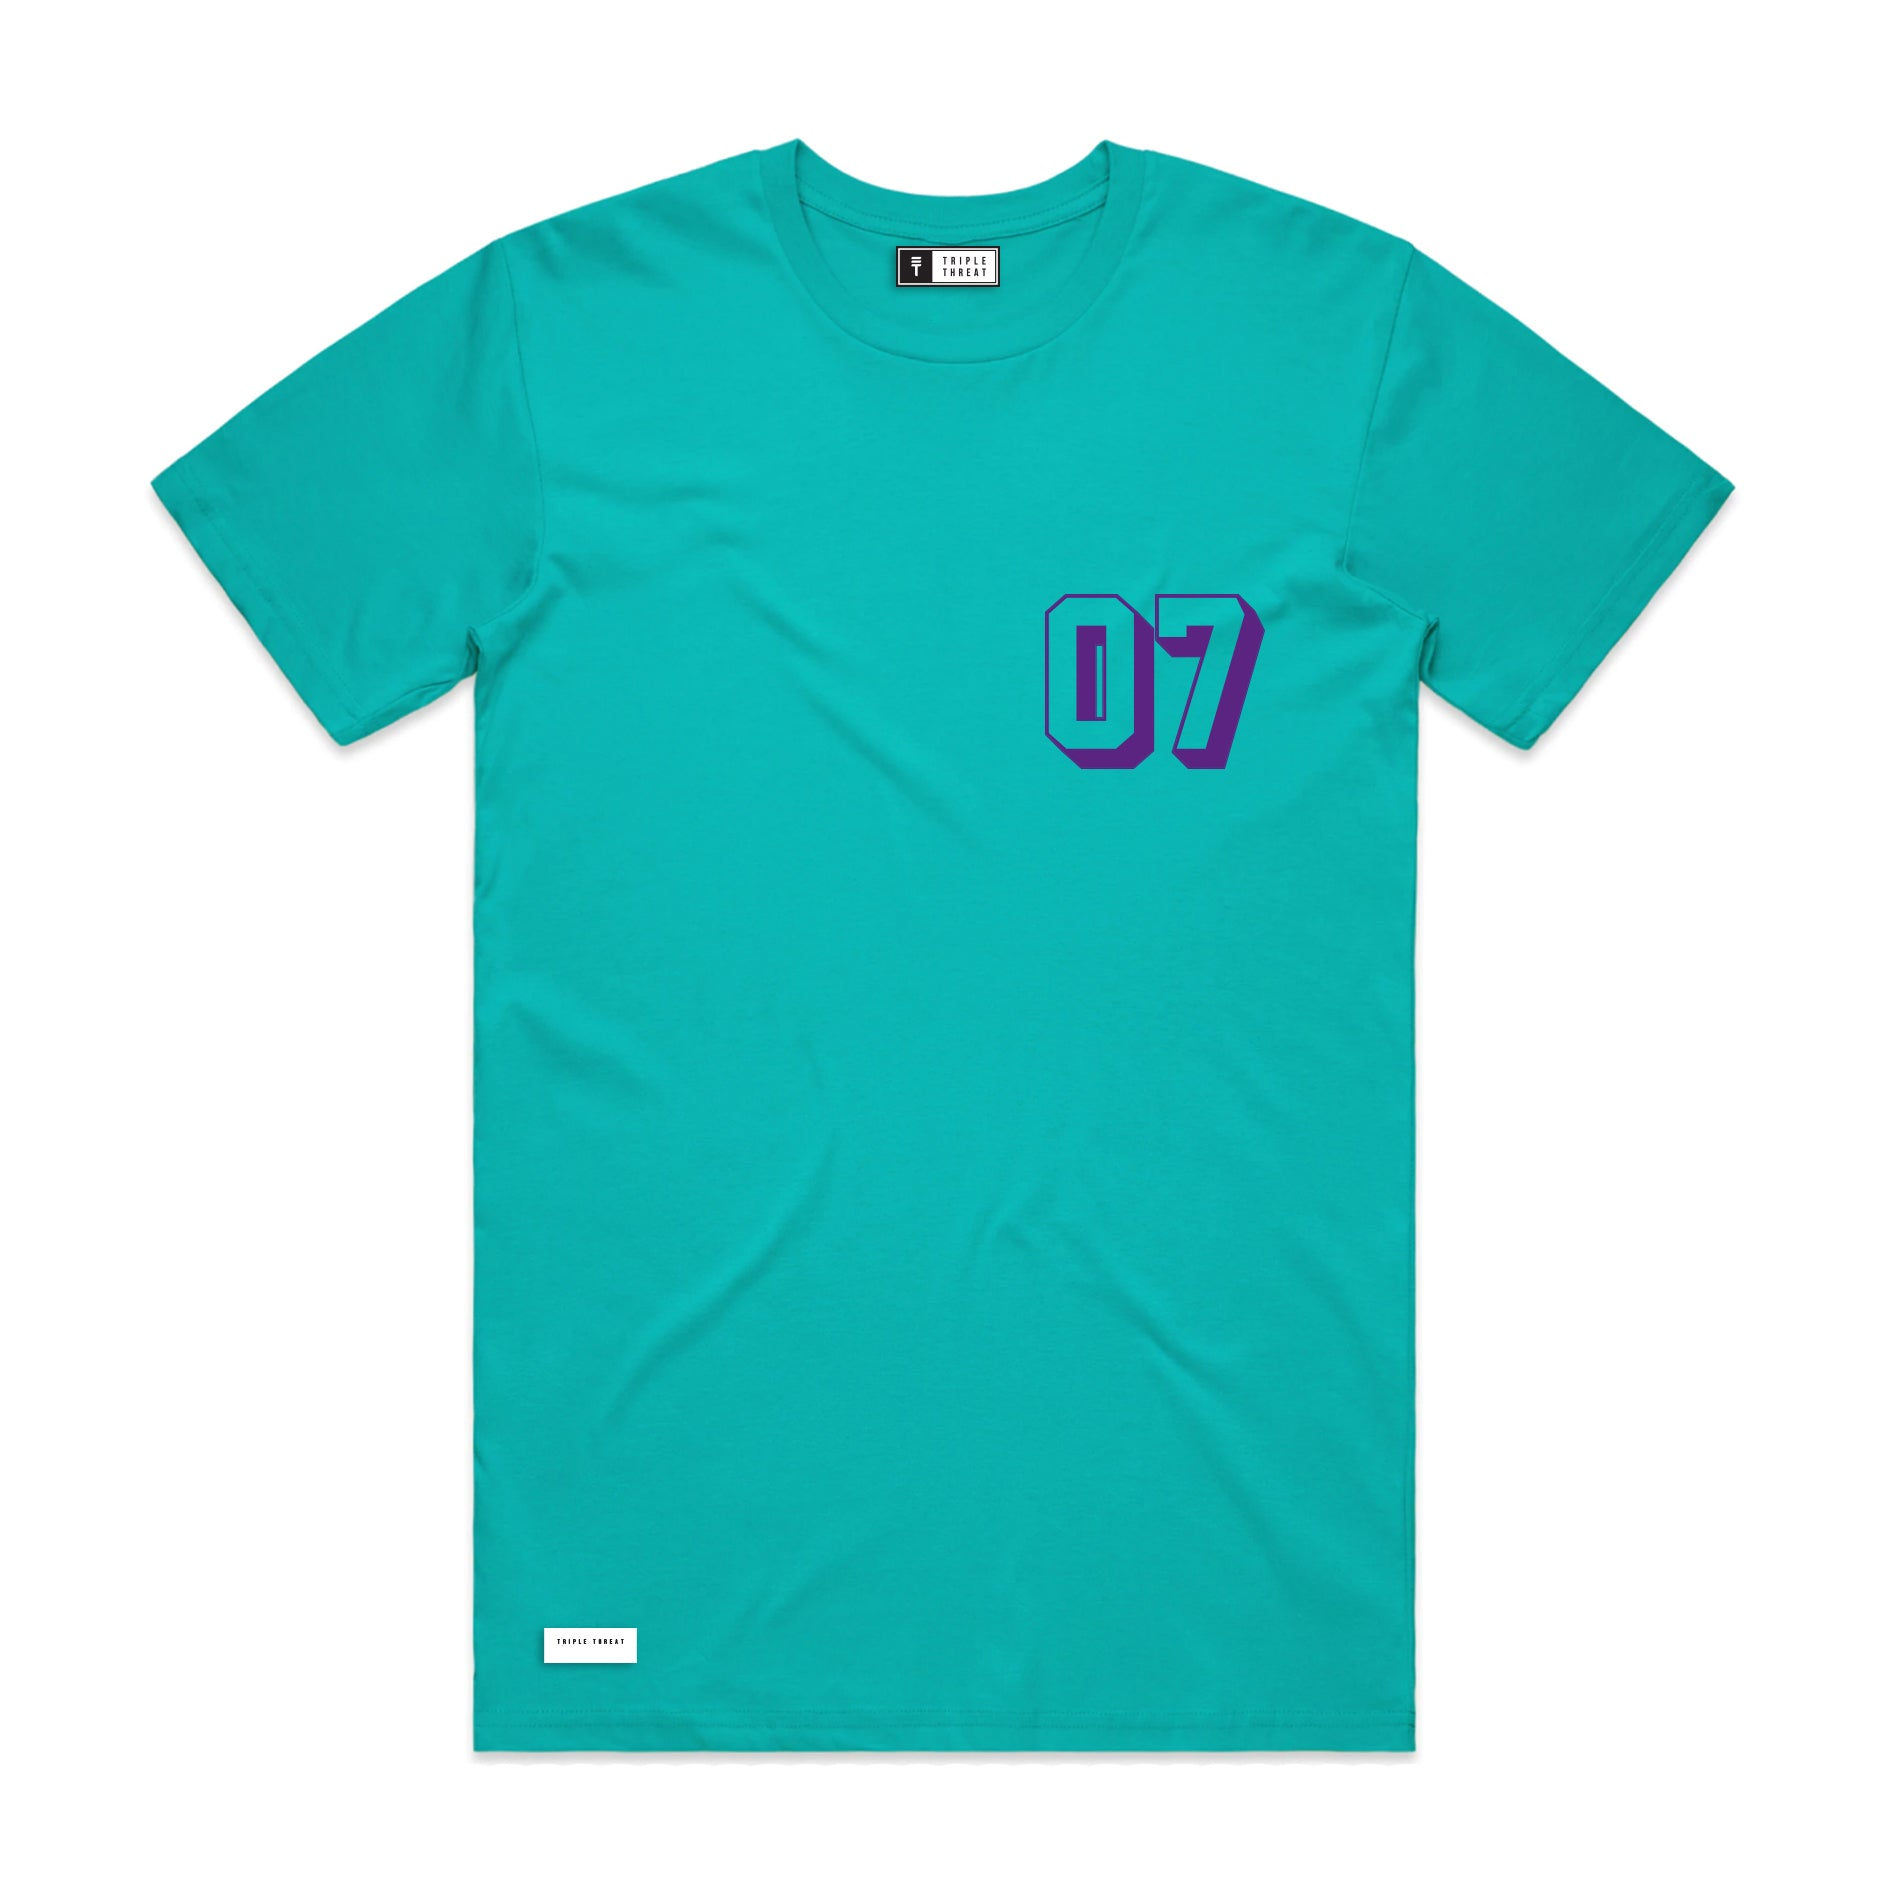 ALL STAR T-SHIRT - TEAL & PURPLE